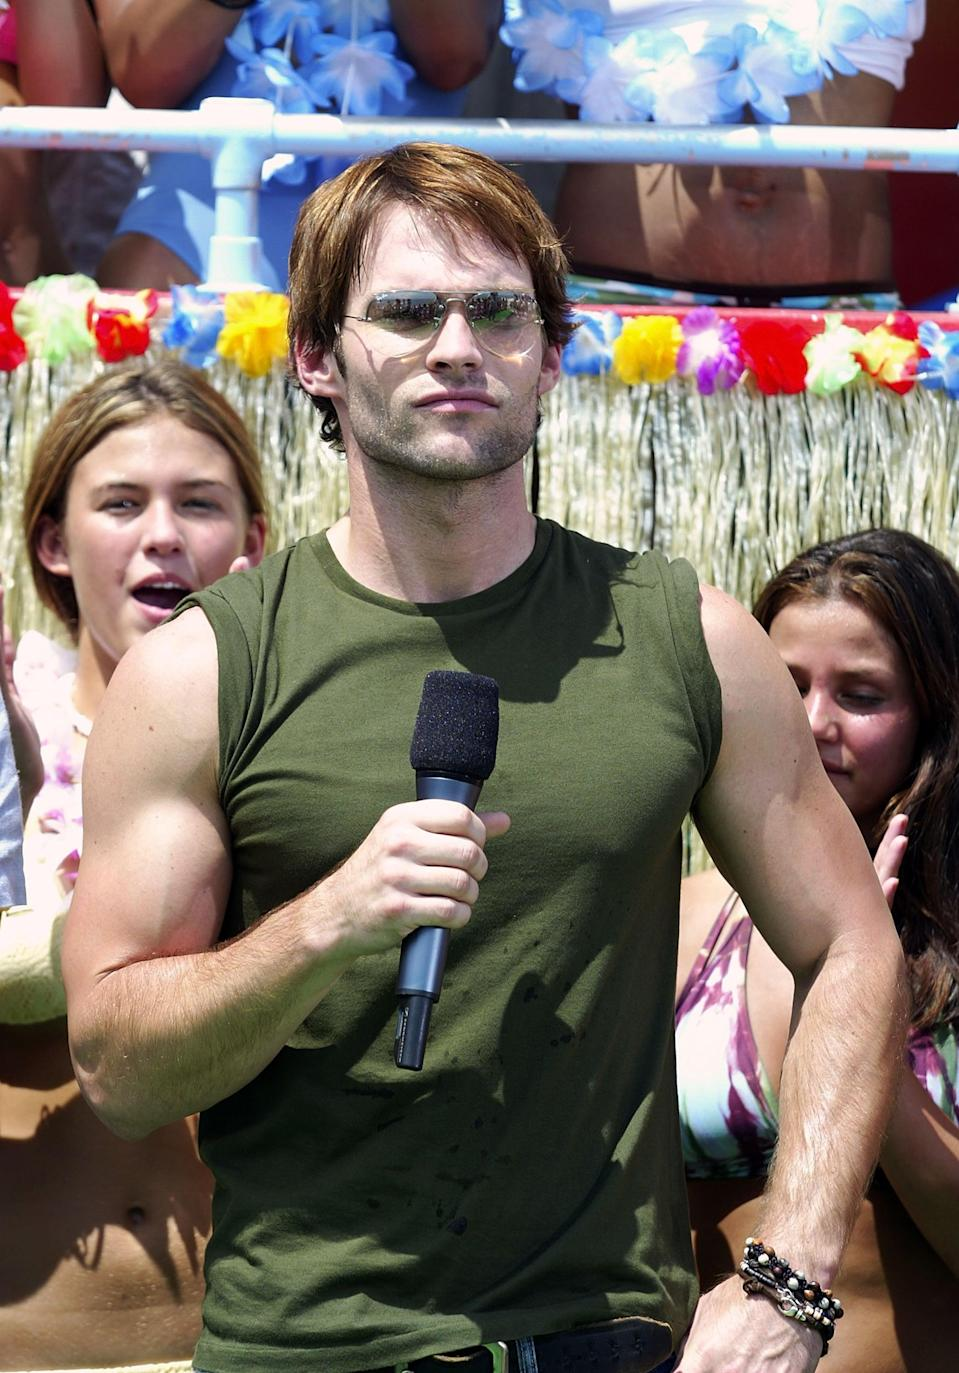 <p>Seann William Scott sported some shades while taping <b>TRL</b> at the MTV Beach House in East Quogue, NY, in 2003.</p>